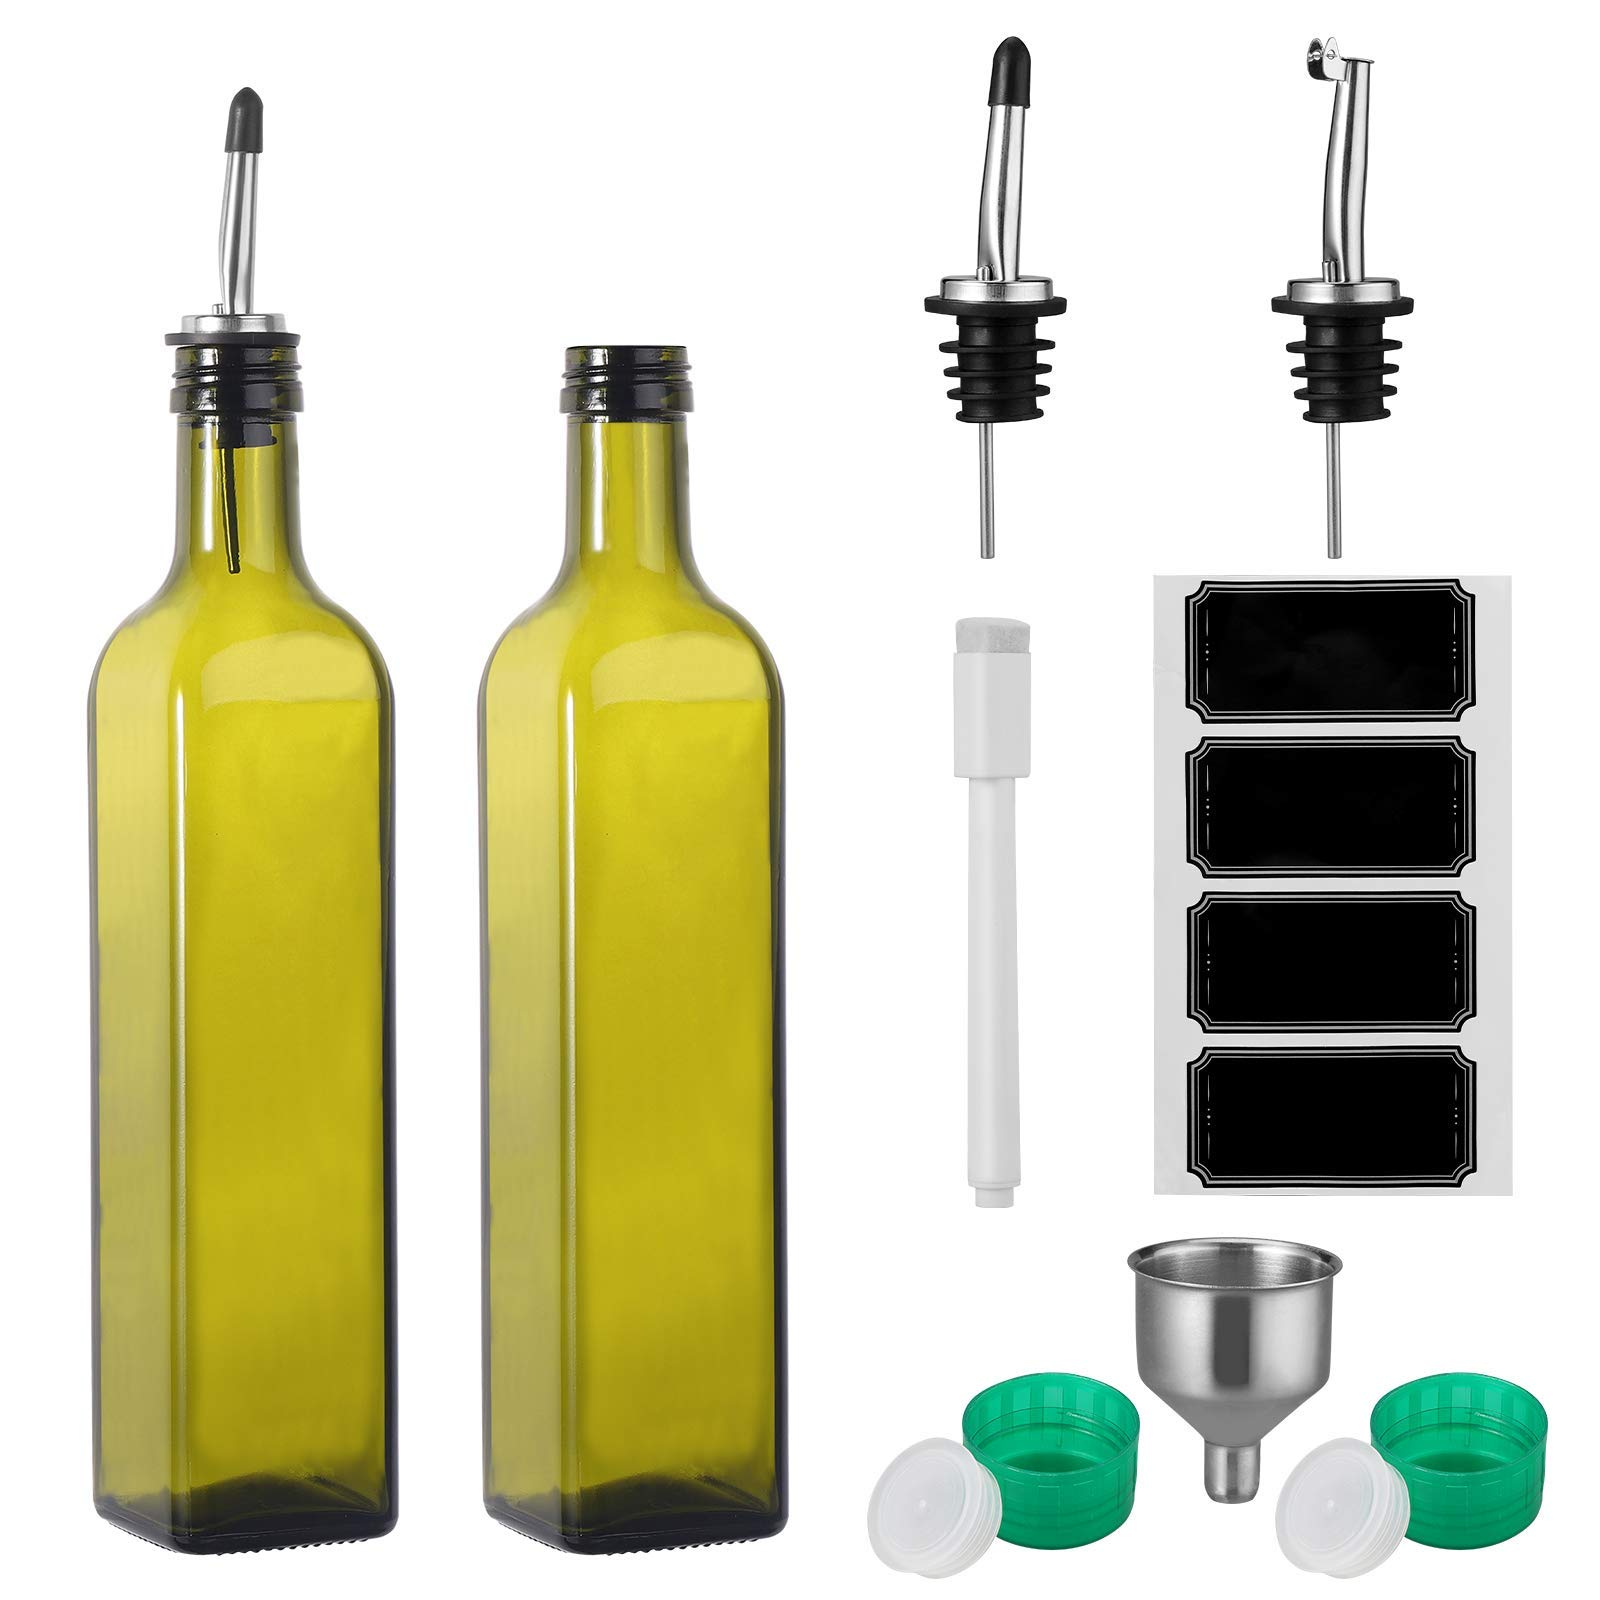 Olive Oil Dispenser 2 Pack of 17 oz. Glass Bottles and Pourer Spout Set for Kitchen - Oil & Vinegar Cruet/Decanter with Funnel, 4 Chalkboard Labels & Marker - Use One, Have One Ready On Standby by Ultimate Hostess